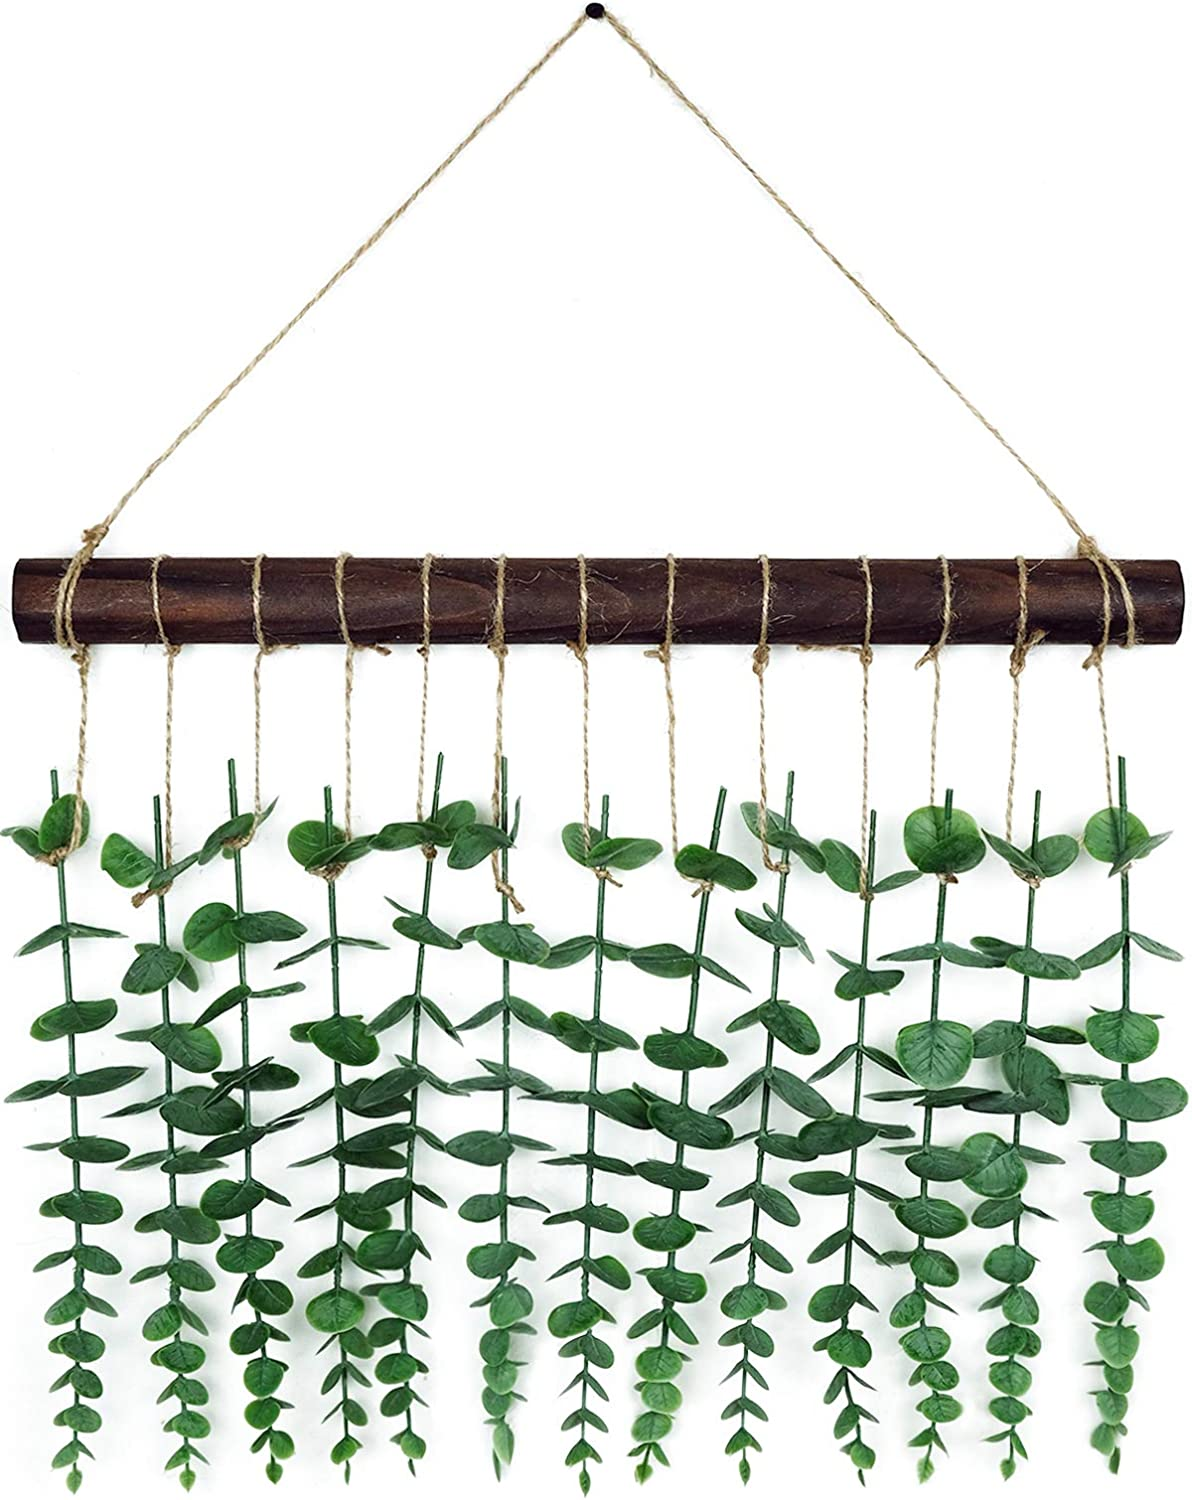 Somto Artificial Eucalyptus Wall Decor - Farmhouse Wall Hanging Fake Eucalyptus Leaves Greenery Plant for Bedroom, Nursery, and Bathroom,Boho Home Decor